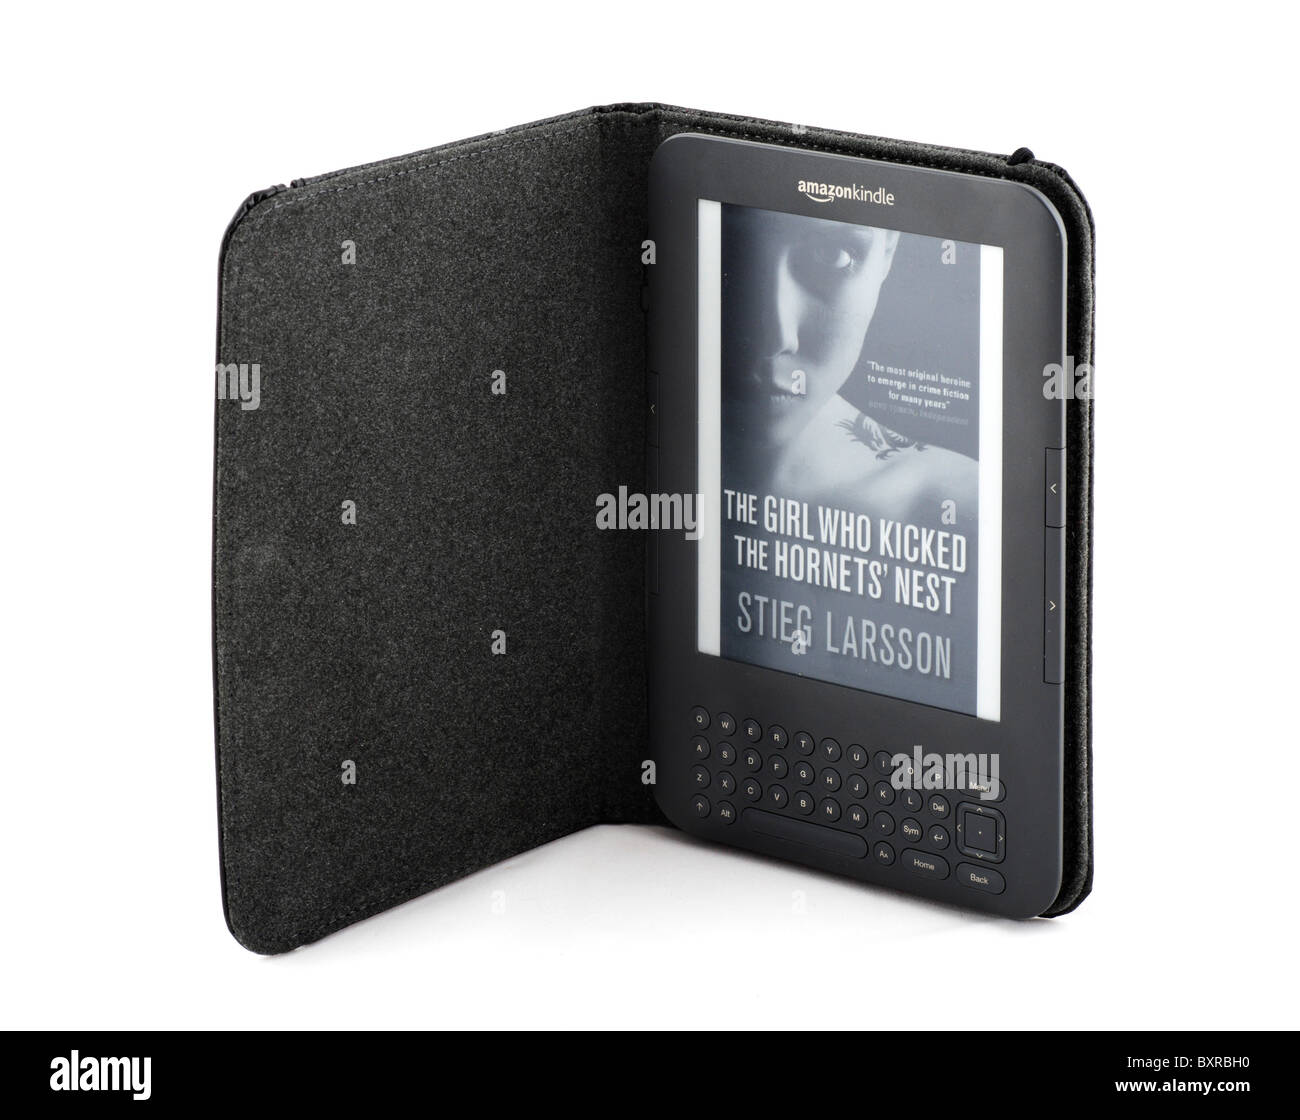 2010/11 l'Amazon Kindle ebook reader dans la couverture en cuir standard avec une copie de Stieg Larsson, meilleure Photo Stock